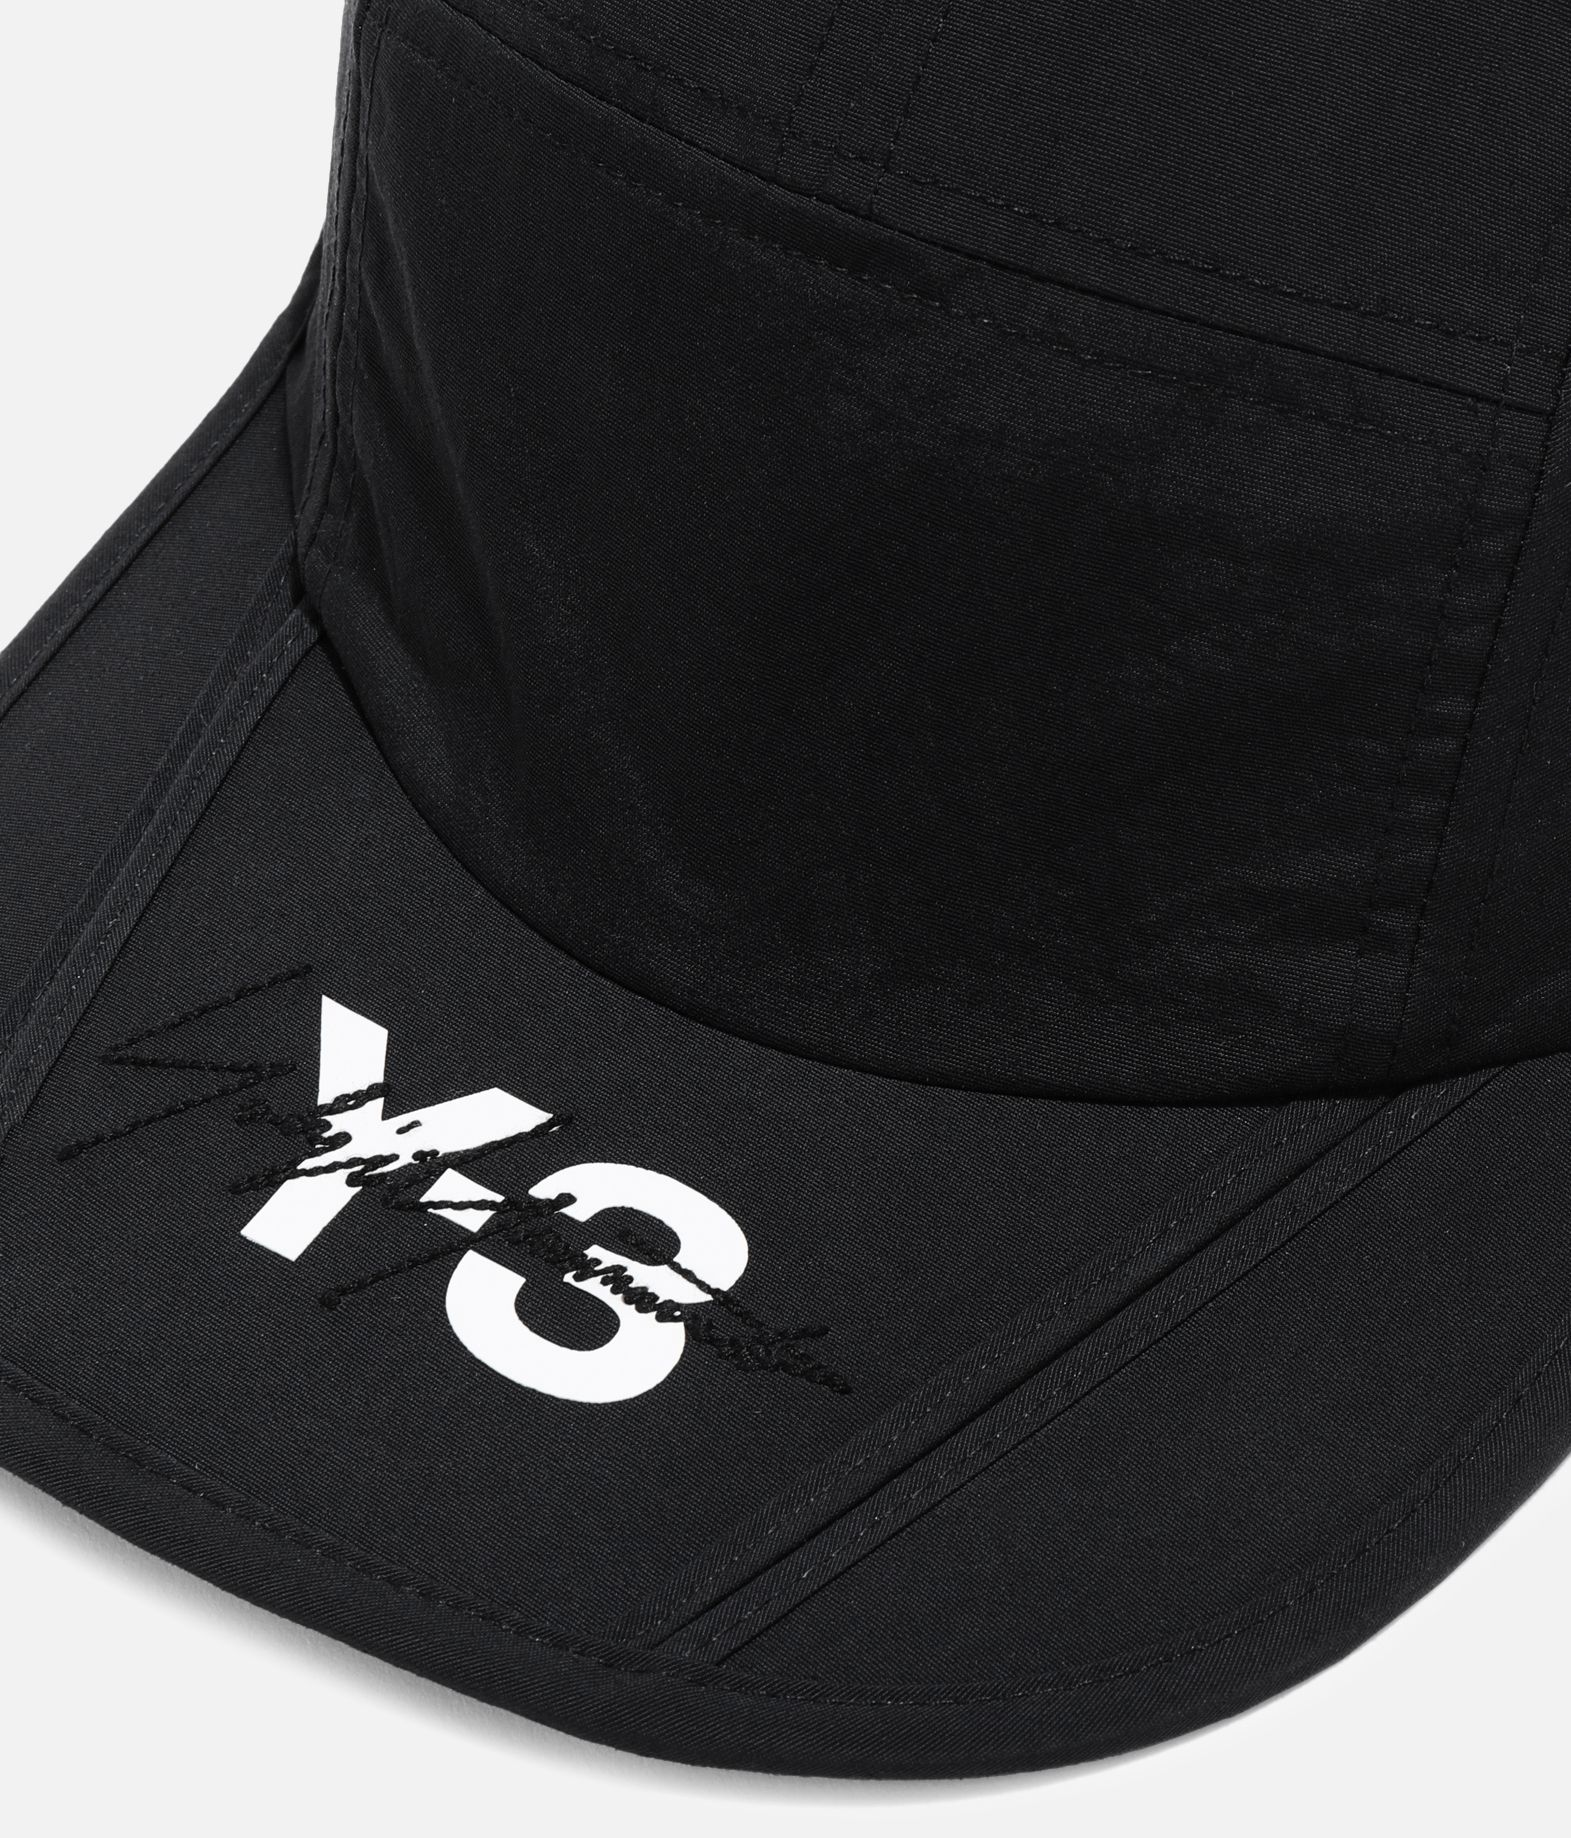 Y-3 Y-3 Foldable Cap キャップ E d